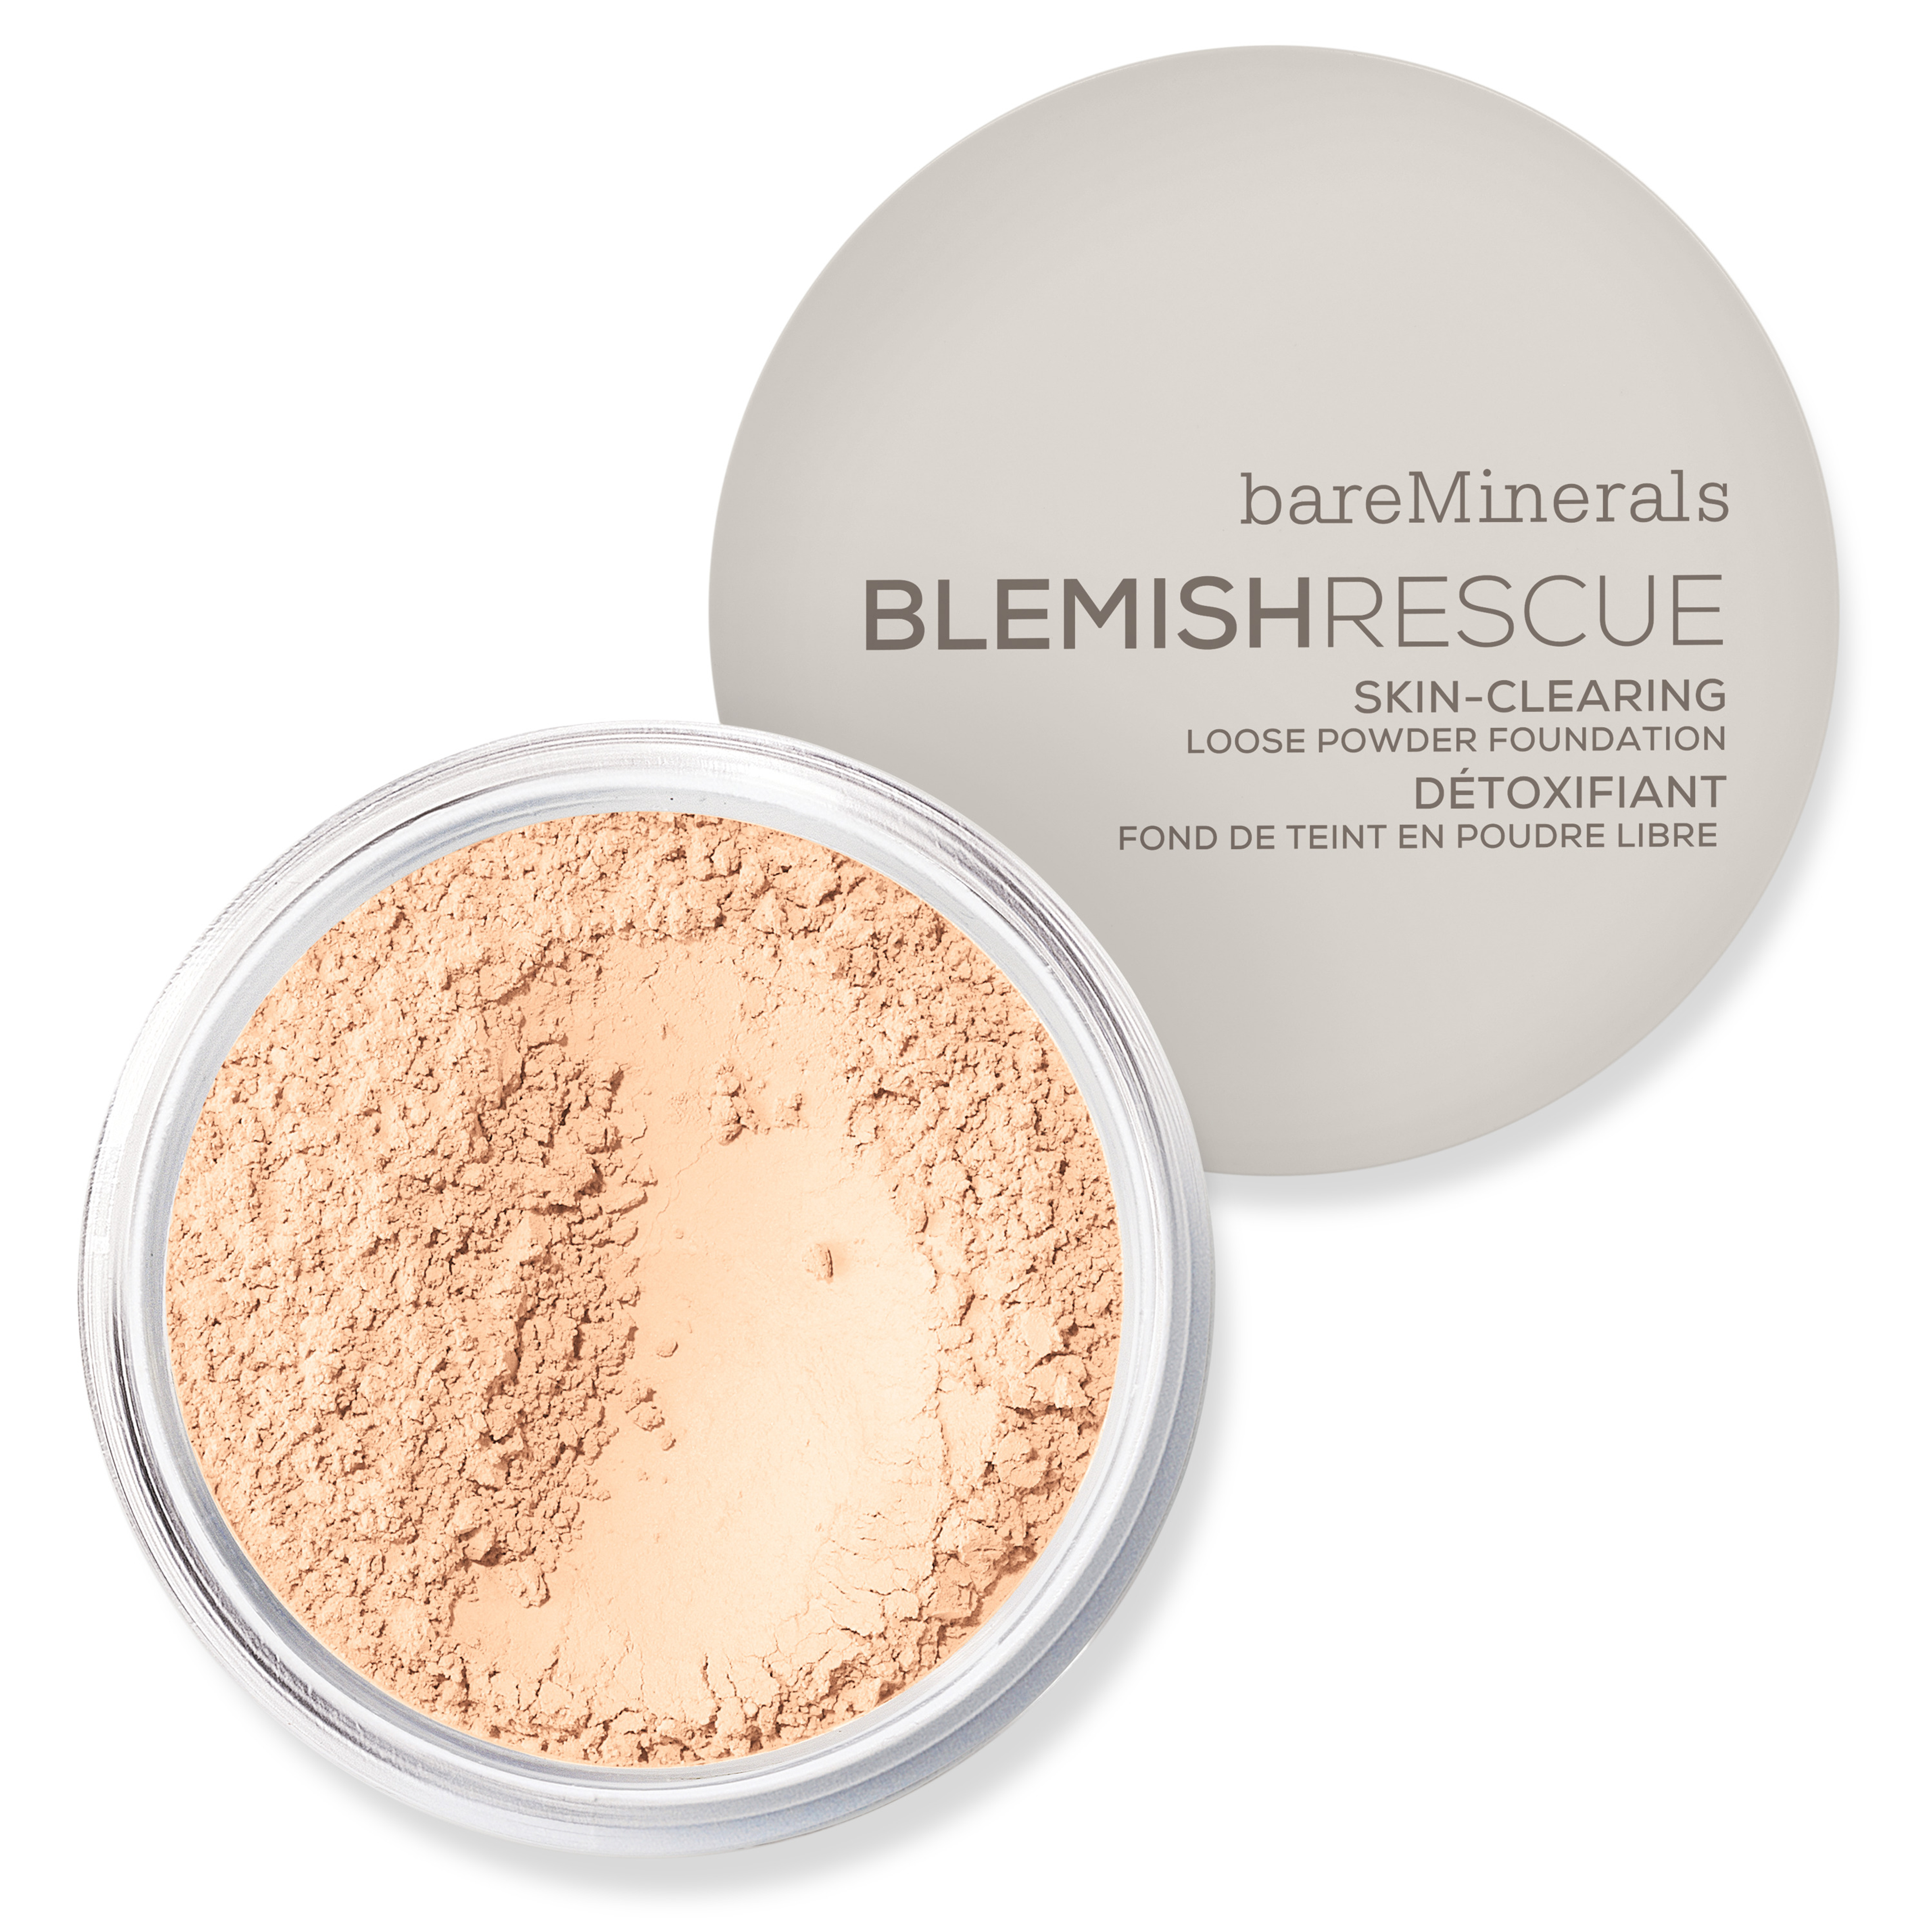 Blemish Rescue Skin Clearing Loose Powder Foundation Fair 1C